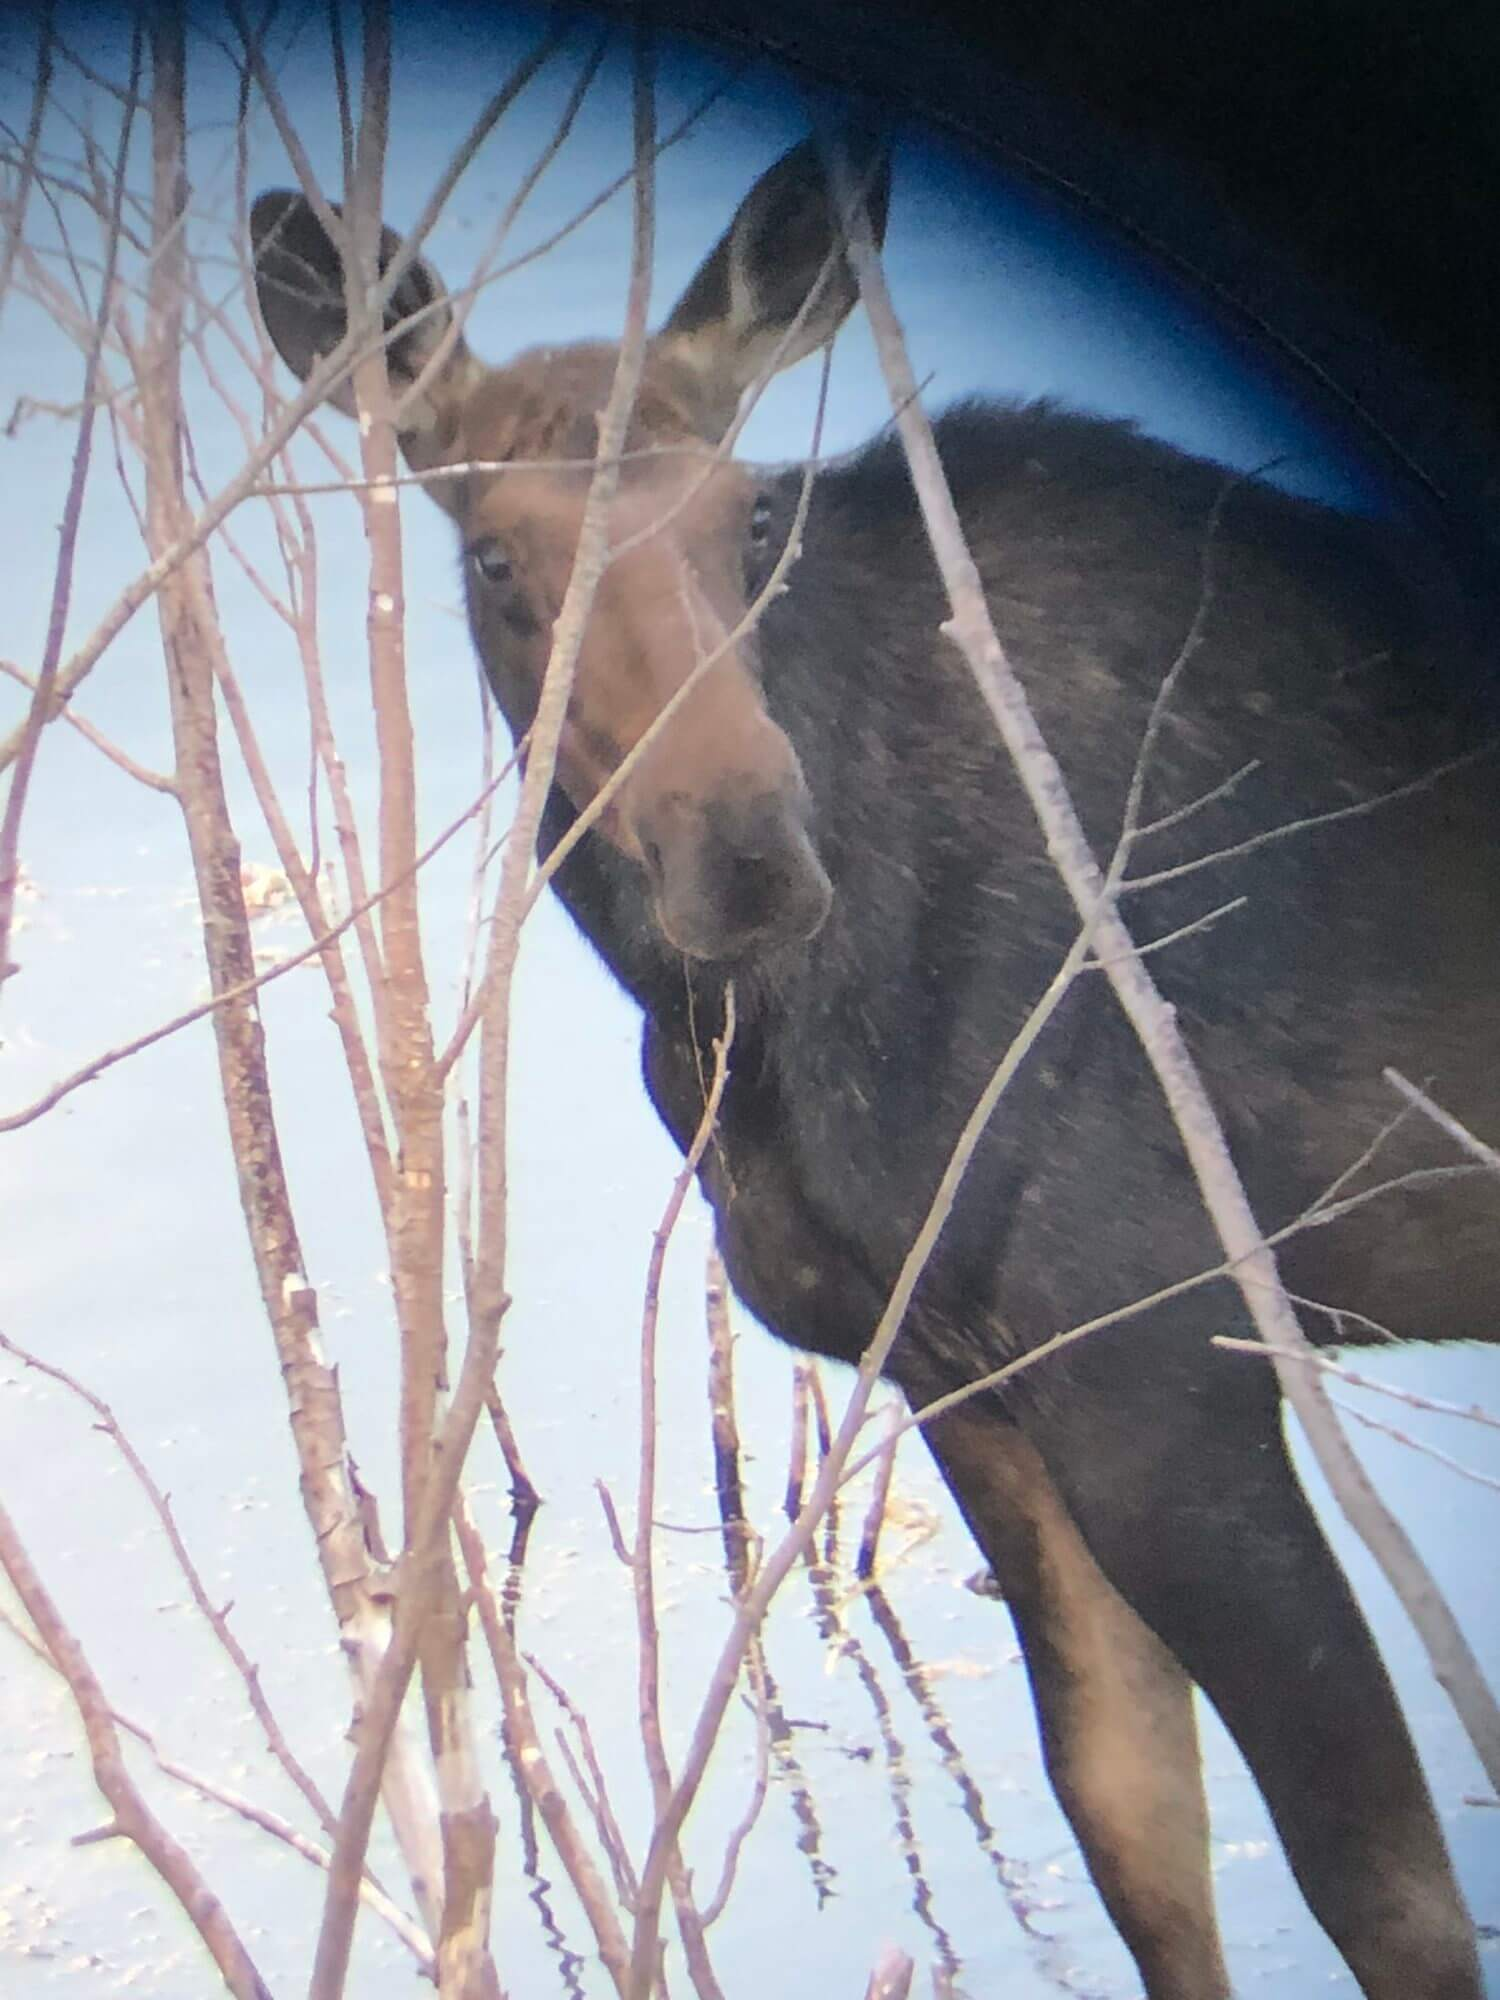 What to expect on a Jackson Hole wildlife safari: using spotting scopes to see animals like this moose.